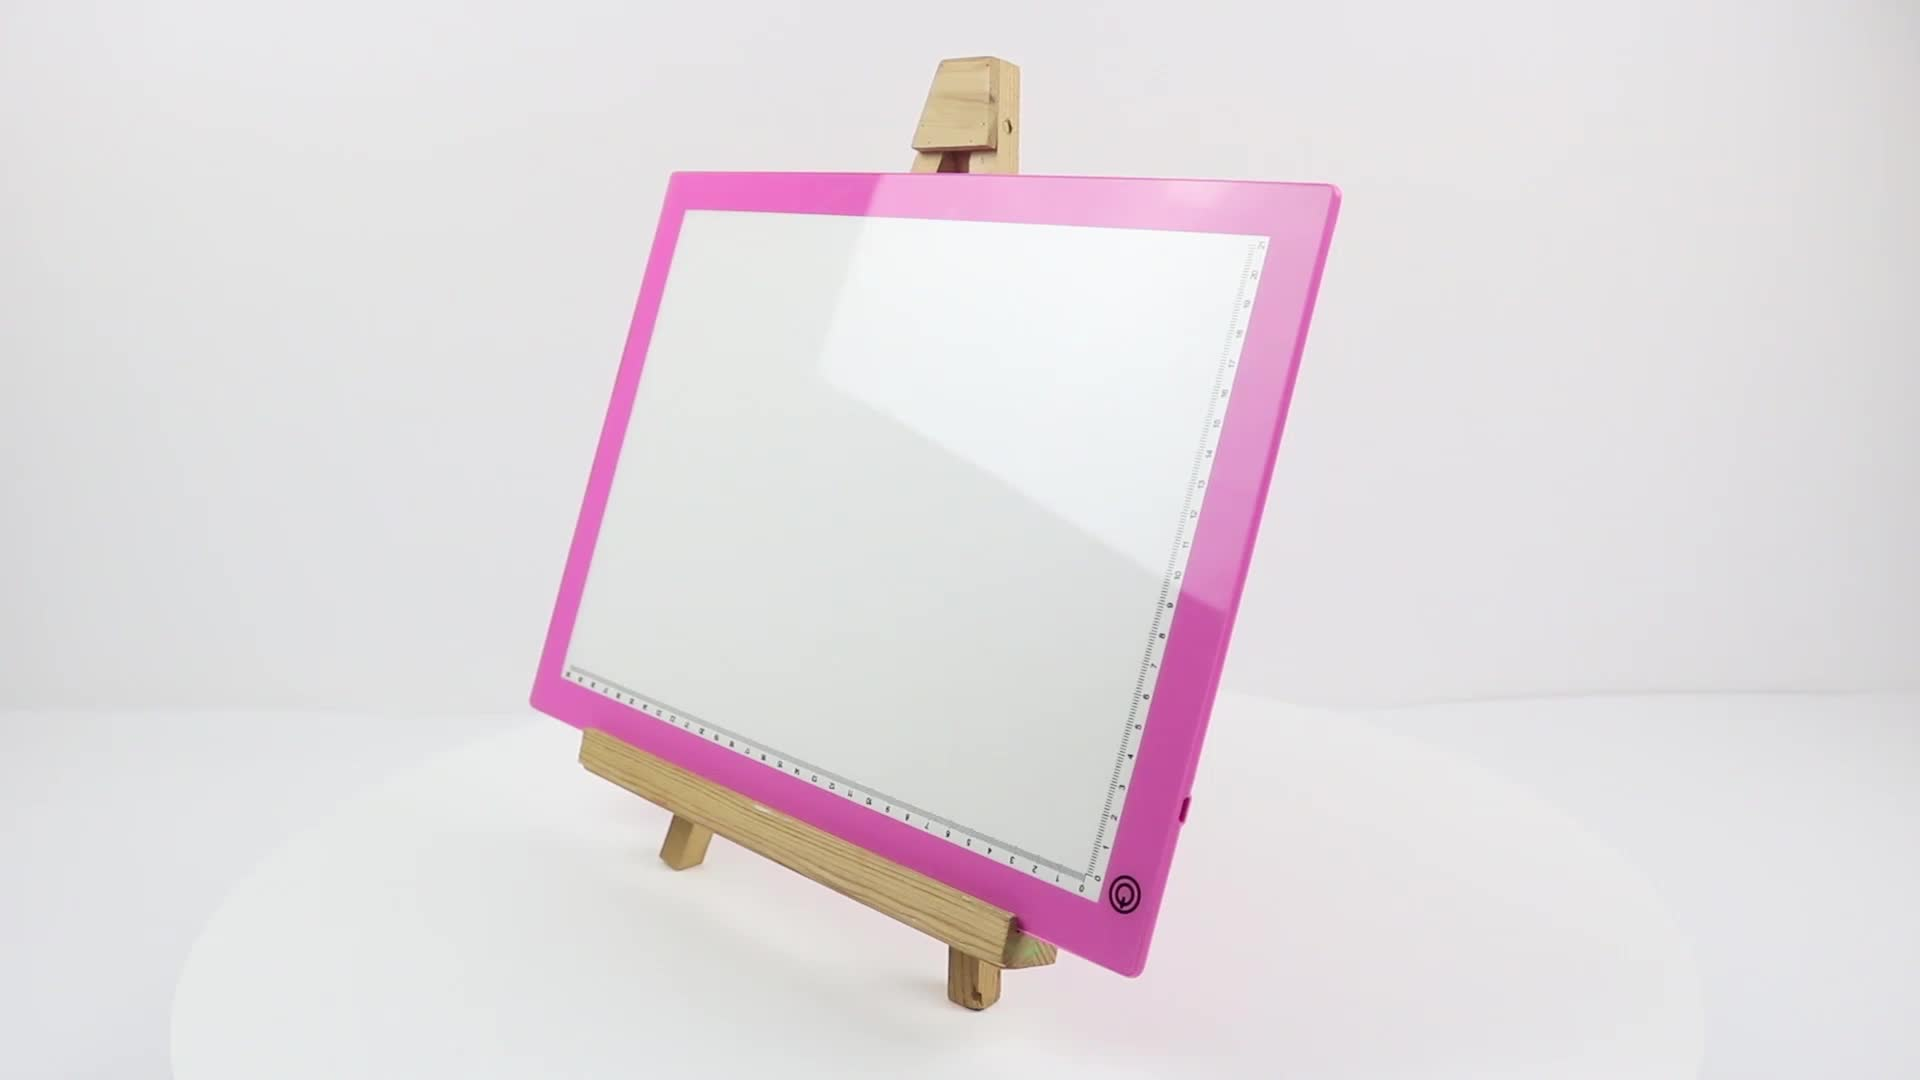 Nieuwe product ideeën 2019 A4 led light pad led tracing lichtbak led panel licht voor kids animatie